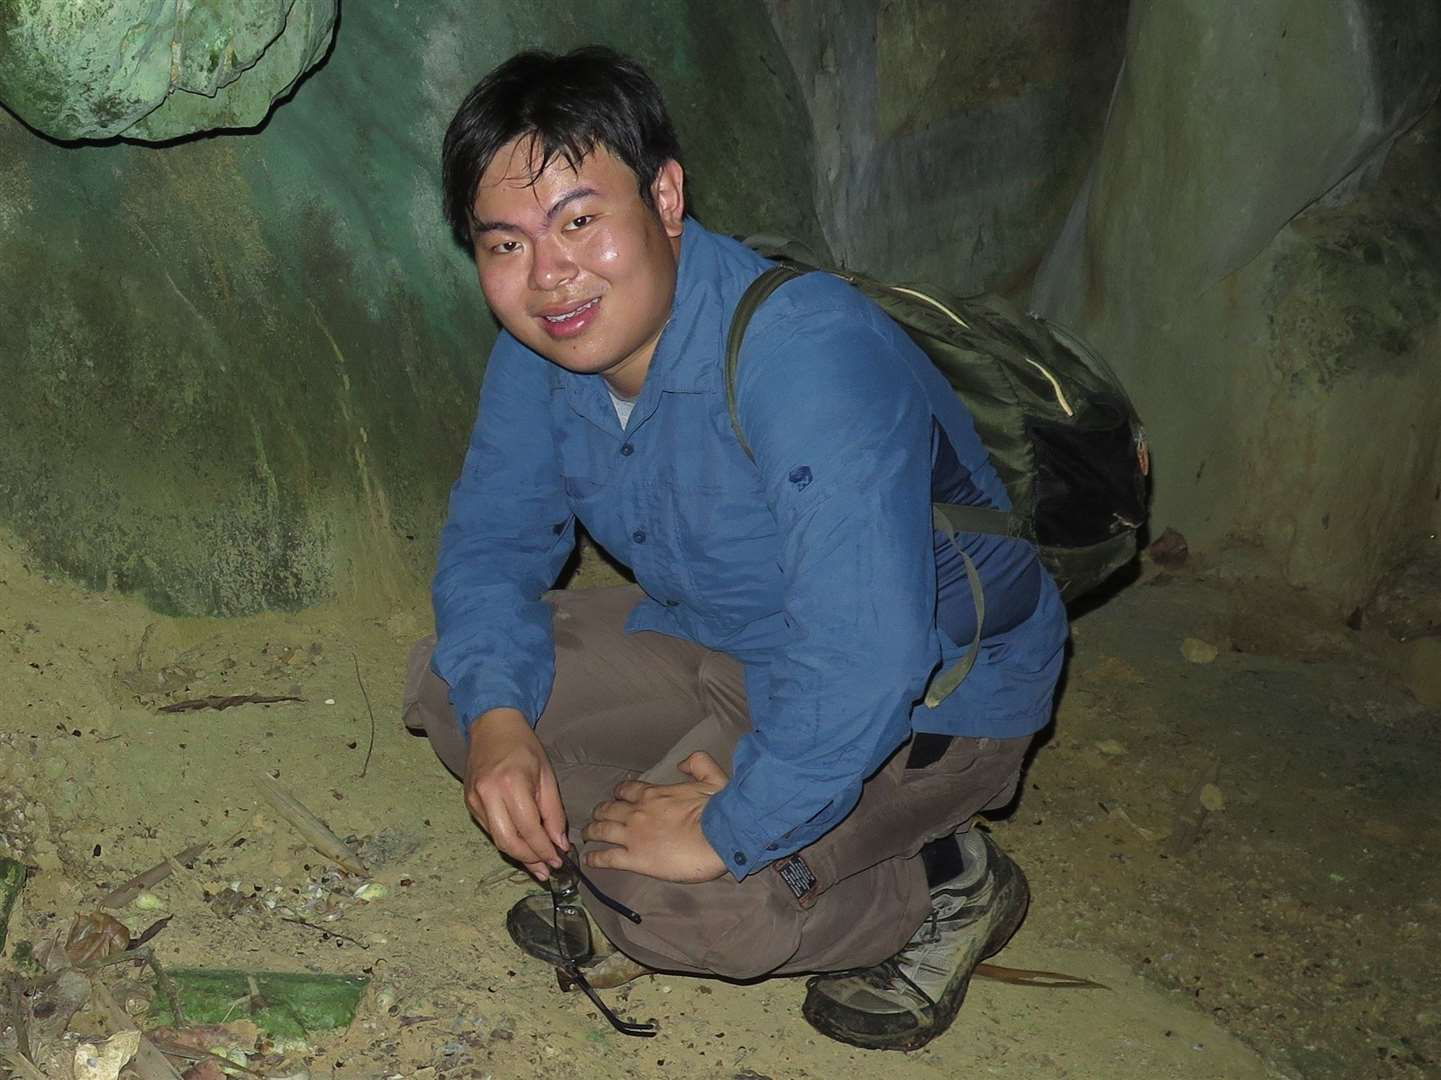 Junn Kitt Foon, Tony Whitten Conservation Prize winner, in a limestone-dominated environment where his studies are at their most productive